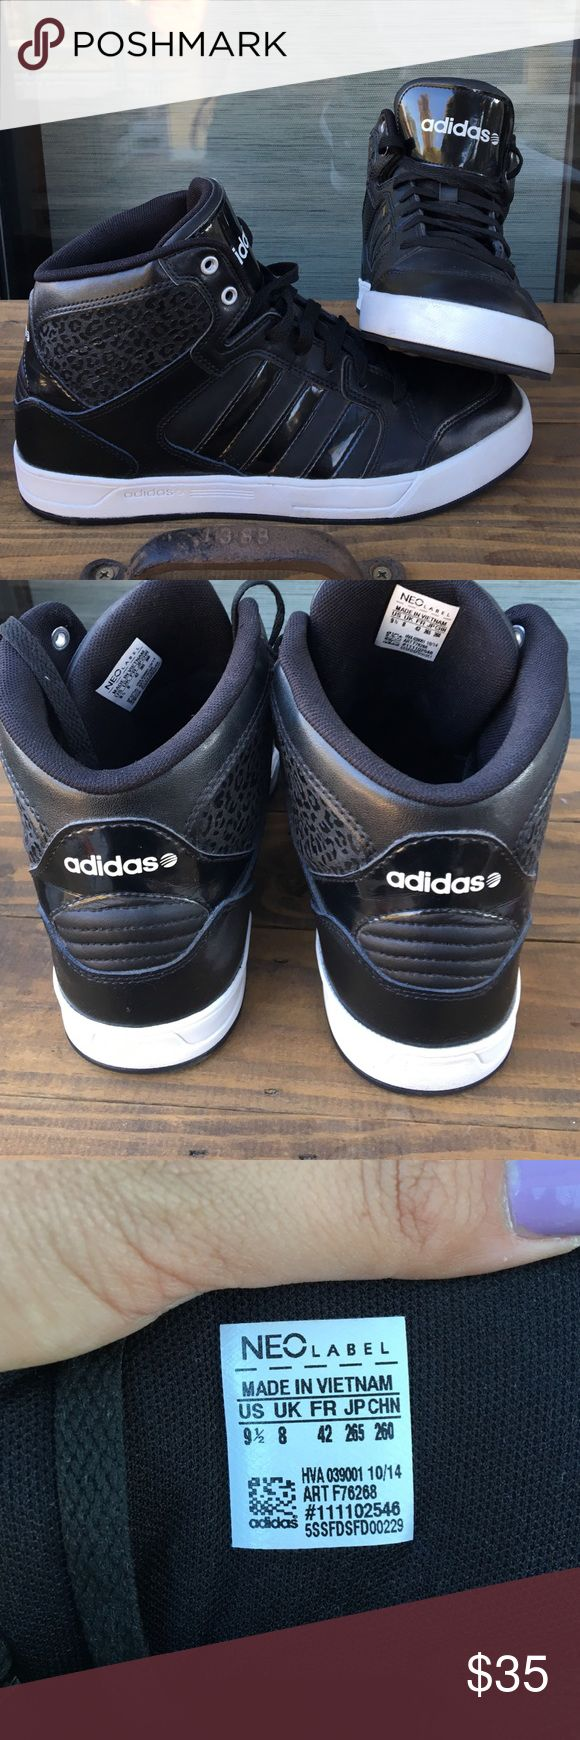 Adidas Neo High Tops 9.5 Lightly used Adidas Neo Ortholite high tops! Size 9.5 adidas Shoes Sneakers